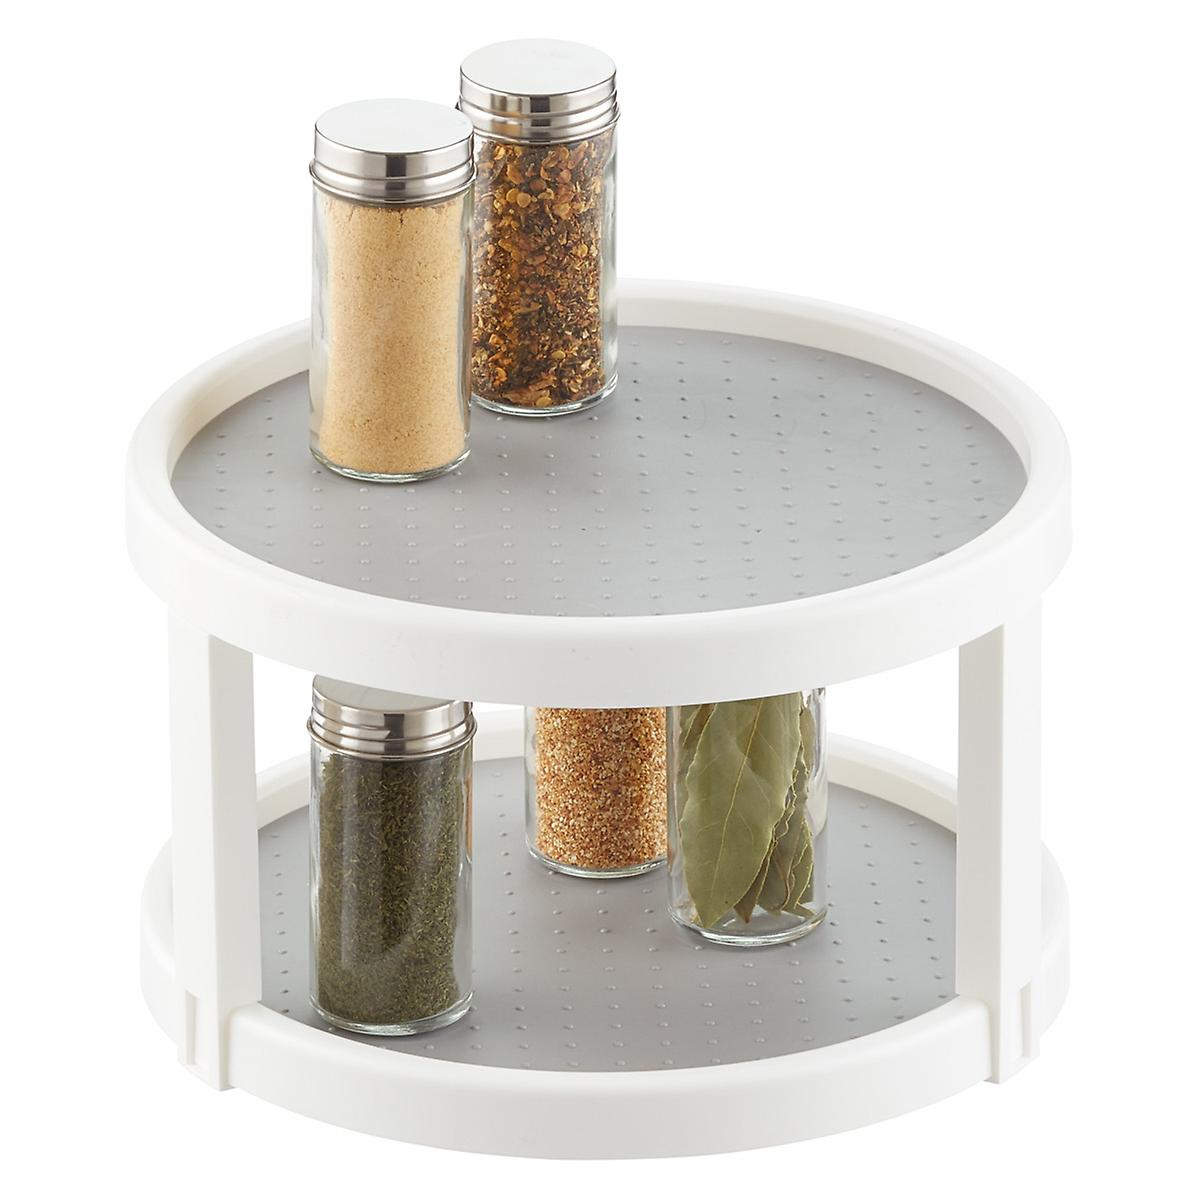 Lazy Susan Double Turntable The Container Store